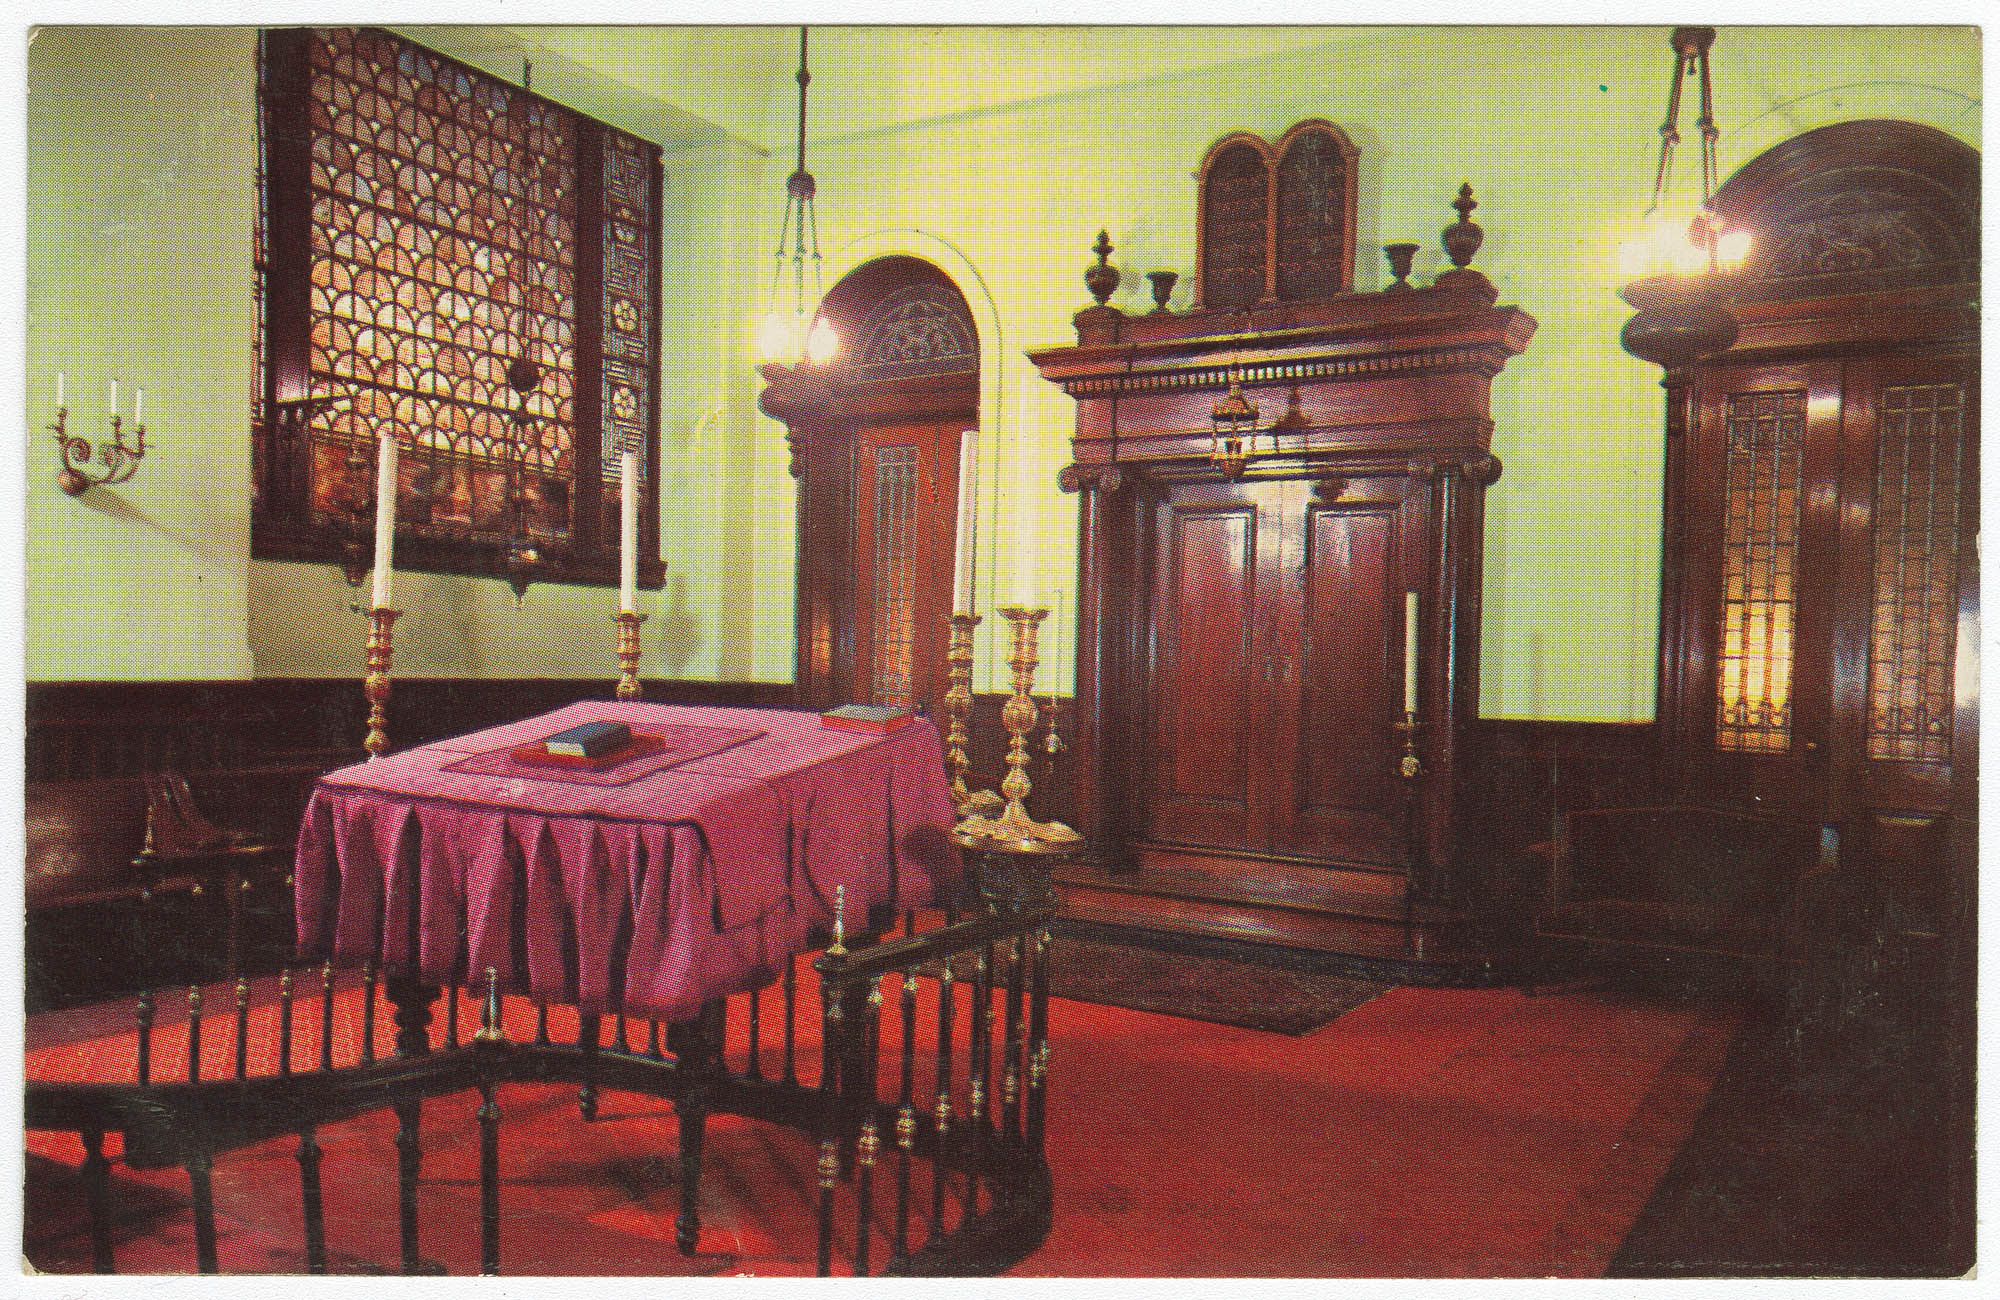 Small Synagogue of the Congregation Shearith Israel, The Spanish and Portuguese Synagogue, Central Park West at 70th Street, New York City